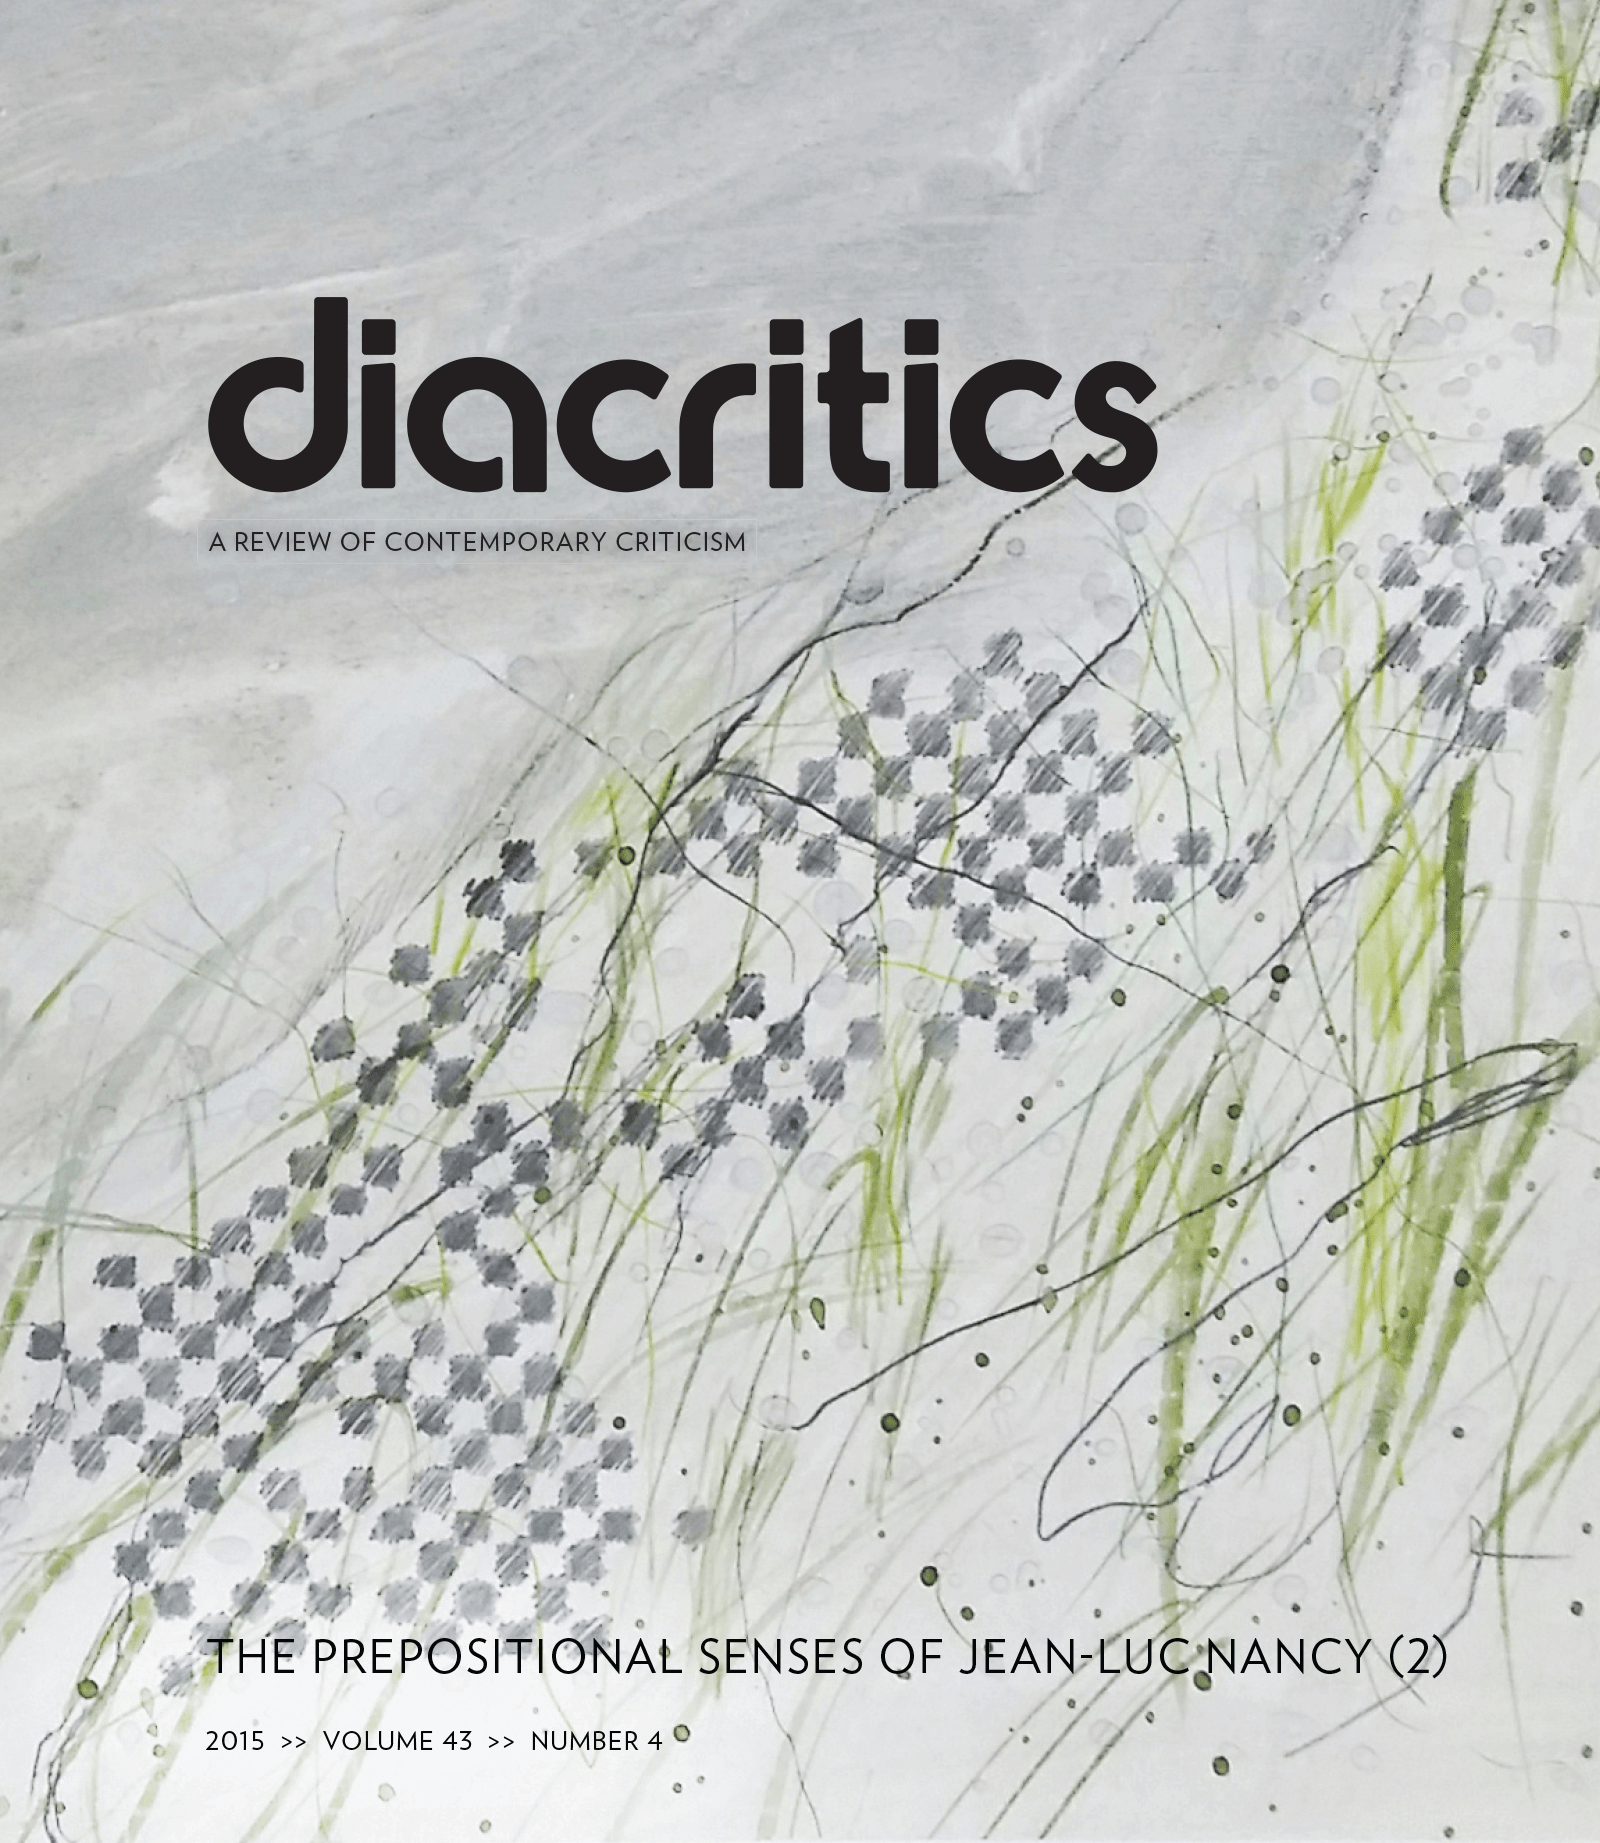 DIACRITICS VOLUME 43 NUMBER 4 2015